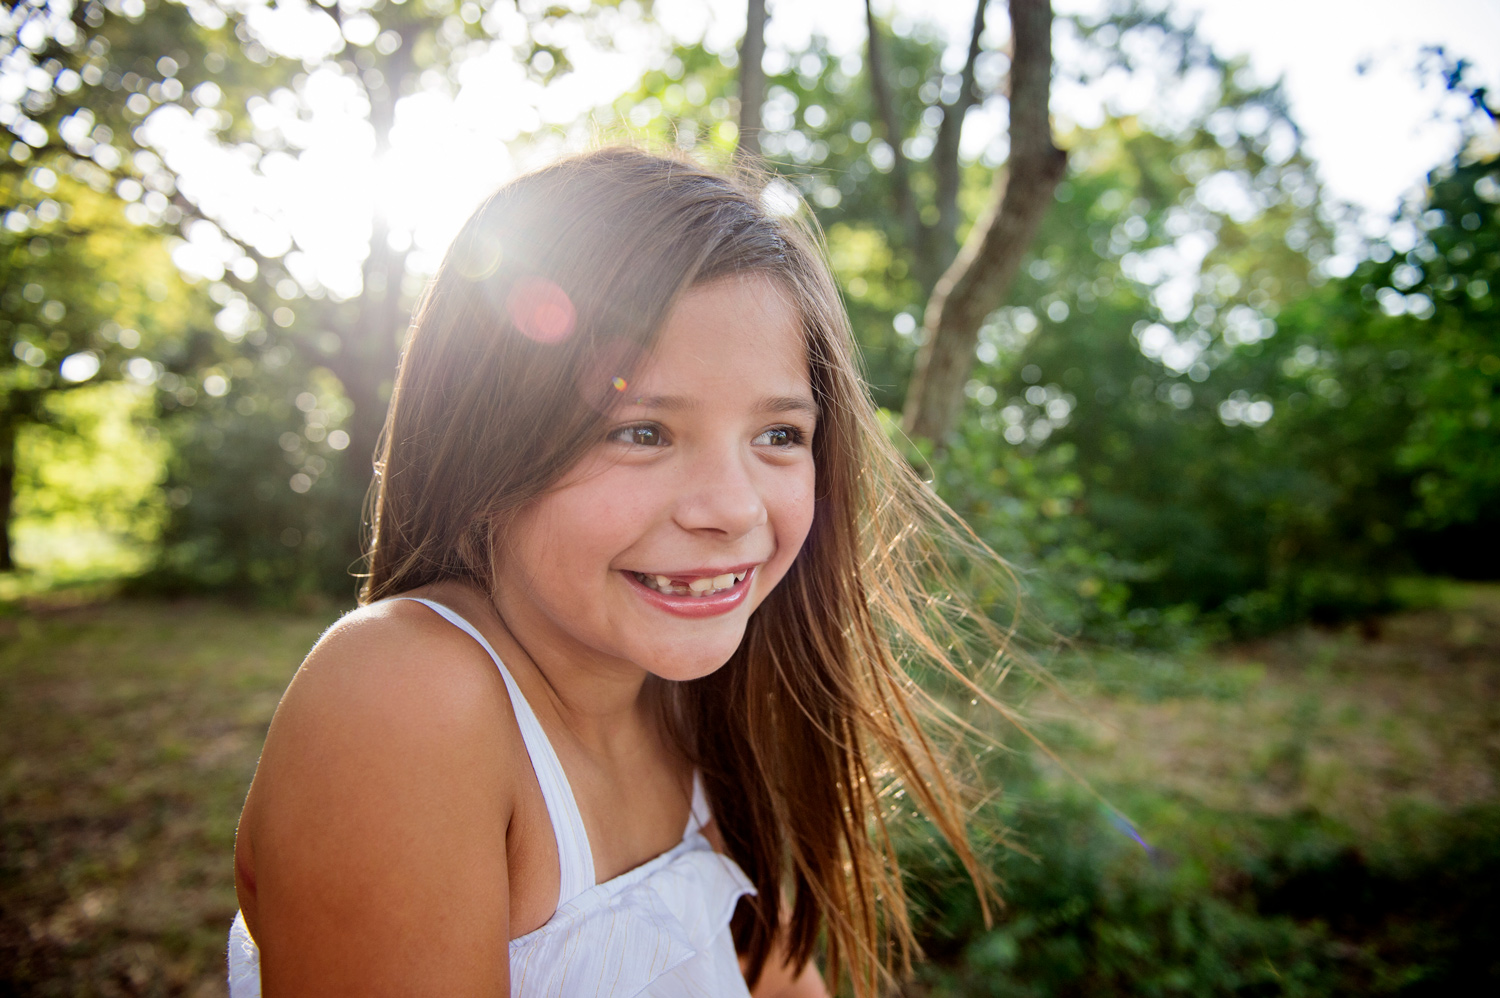 outdoor-child-photographer-houston.jpg